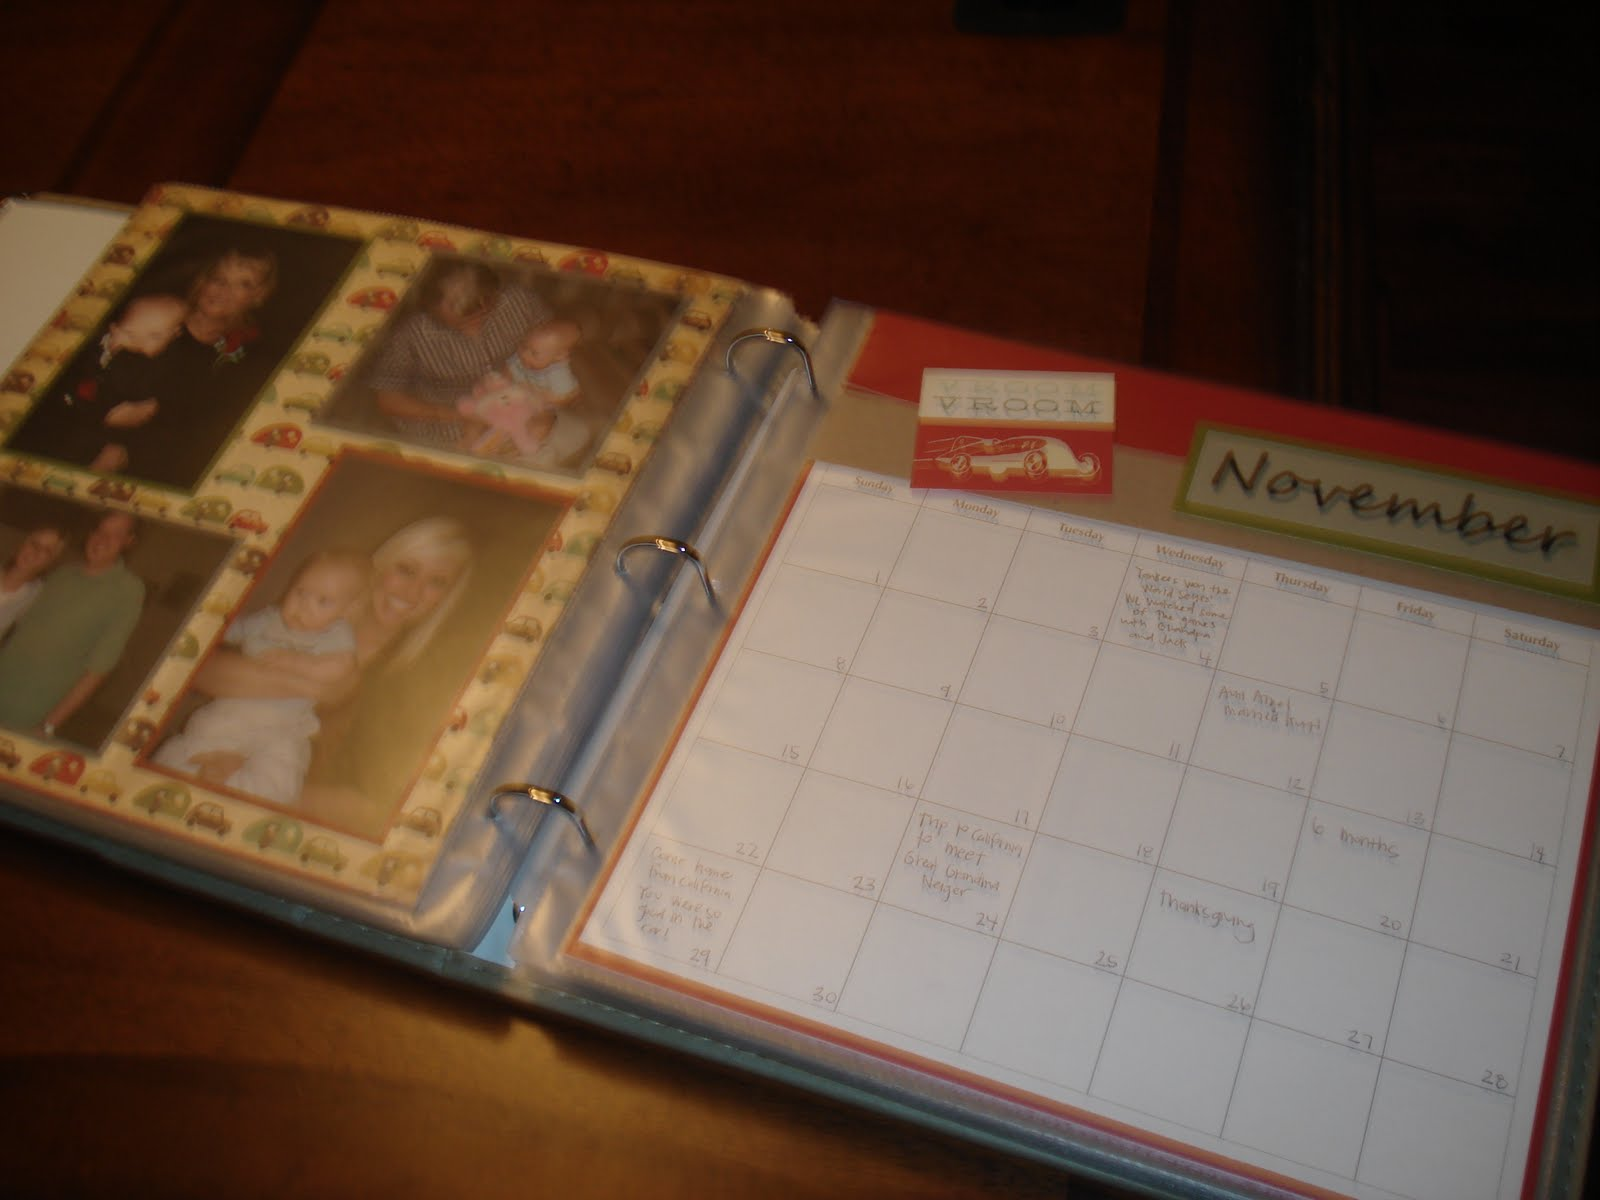 Do it yourself duo one year memory book i also hire a photographer to take pictures once a years fun to keep the favorites in this book as well solutioingenieria Choice Image